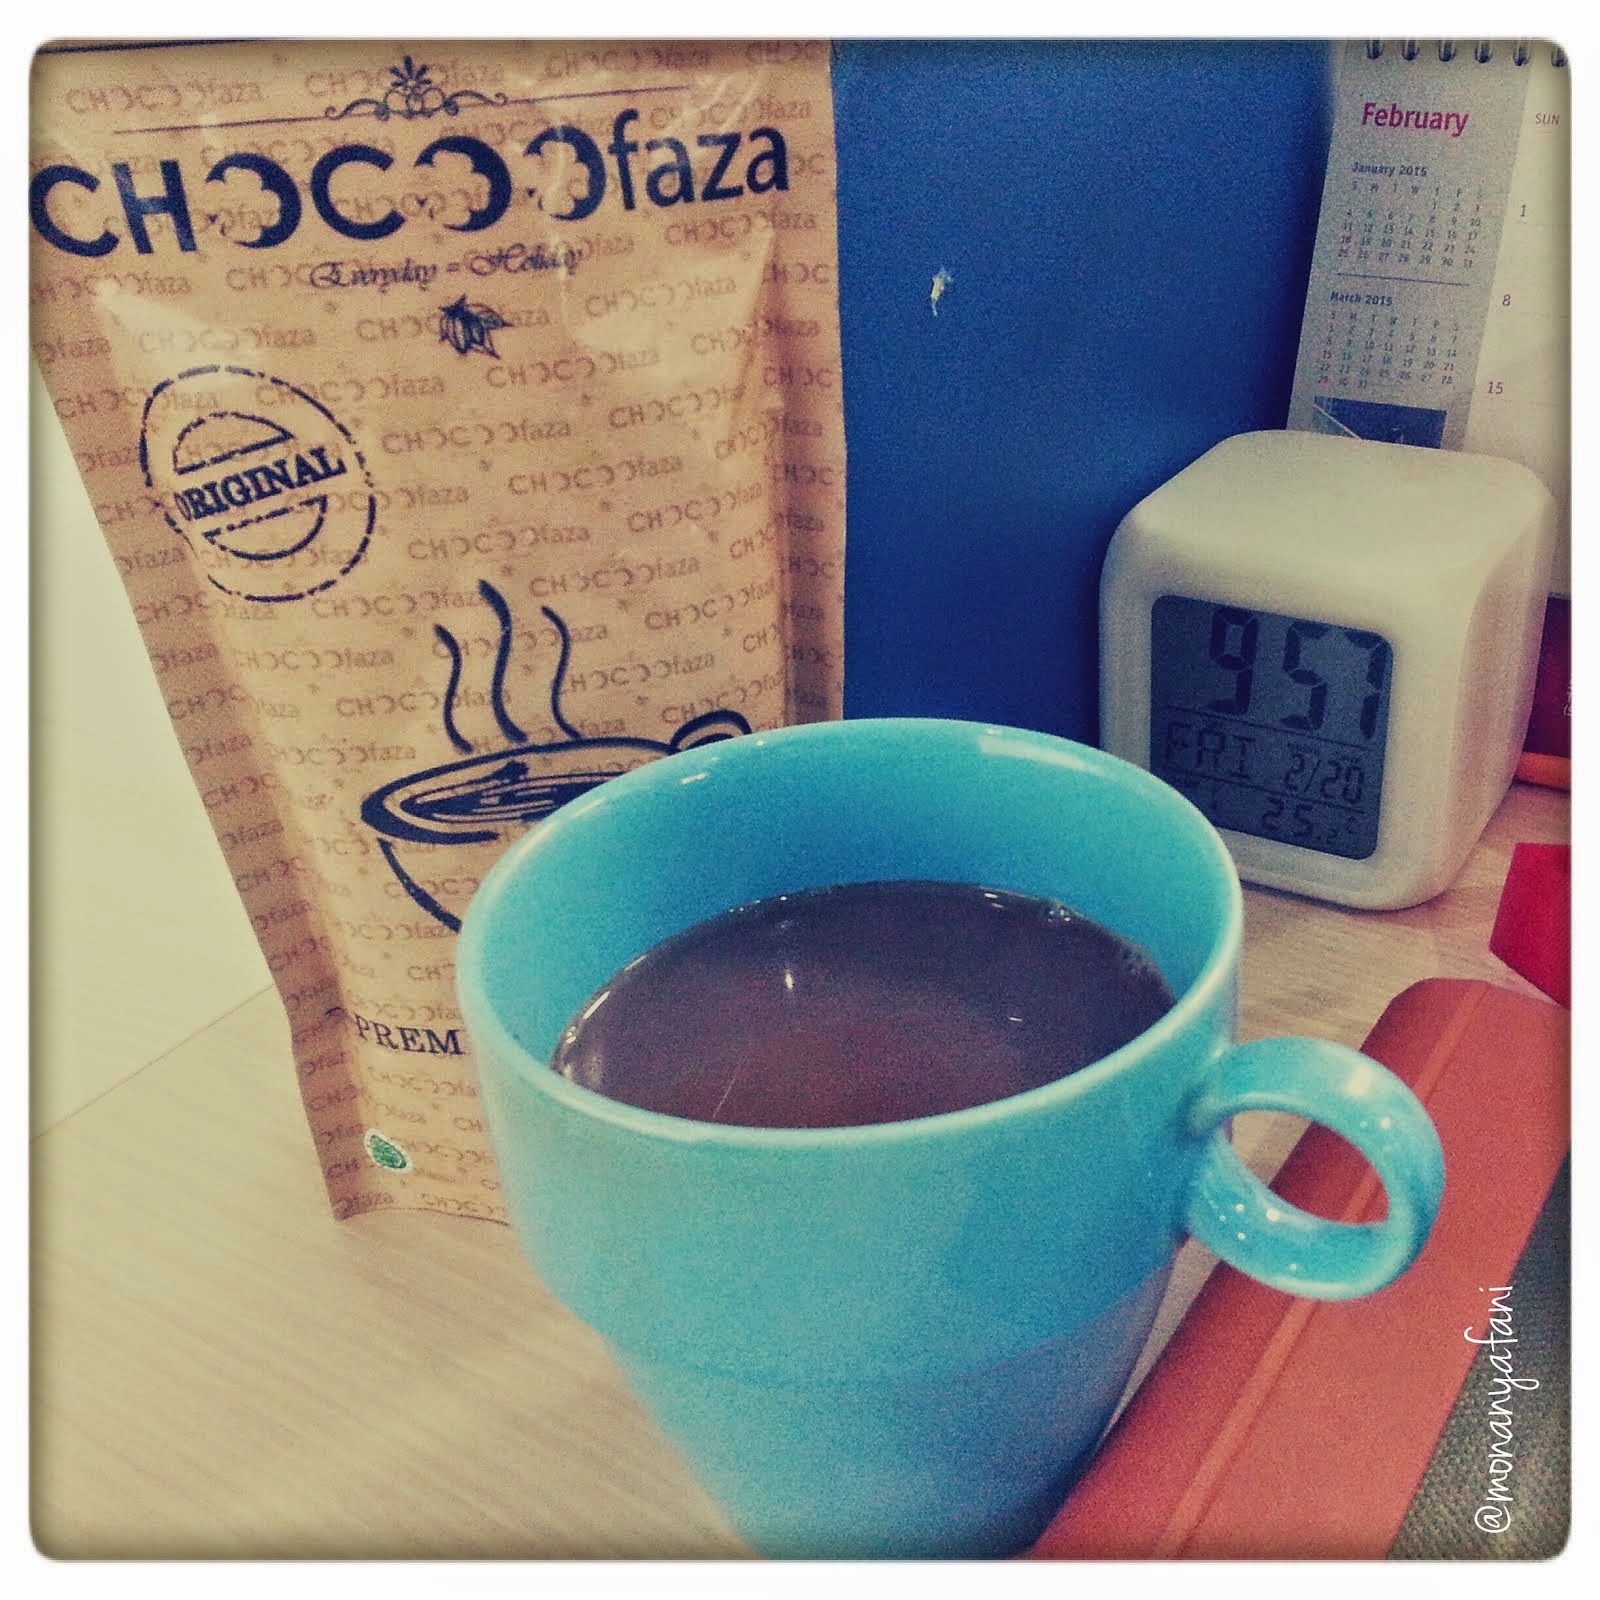 Chocoofaza - Premium Chocolate Drink